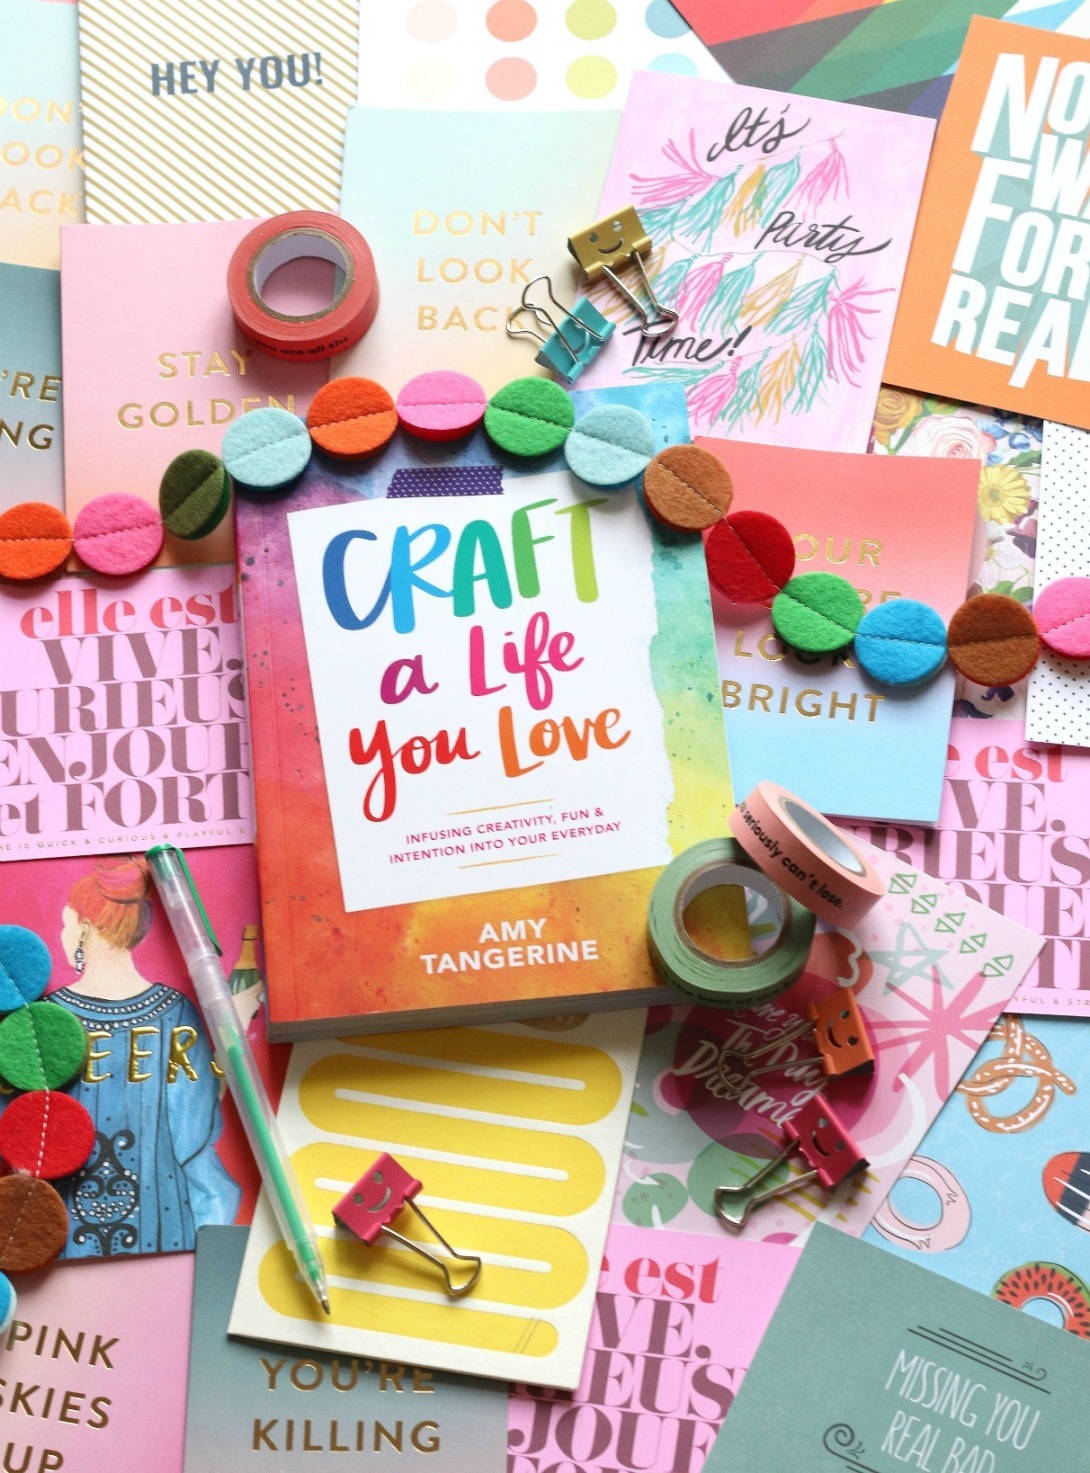 Craft A Life You Love by Amy Tangerine